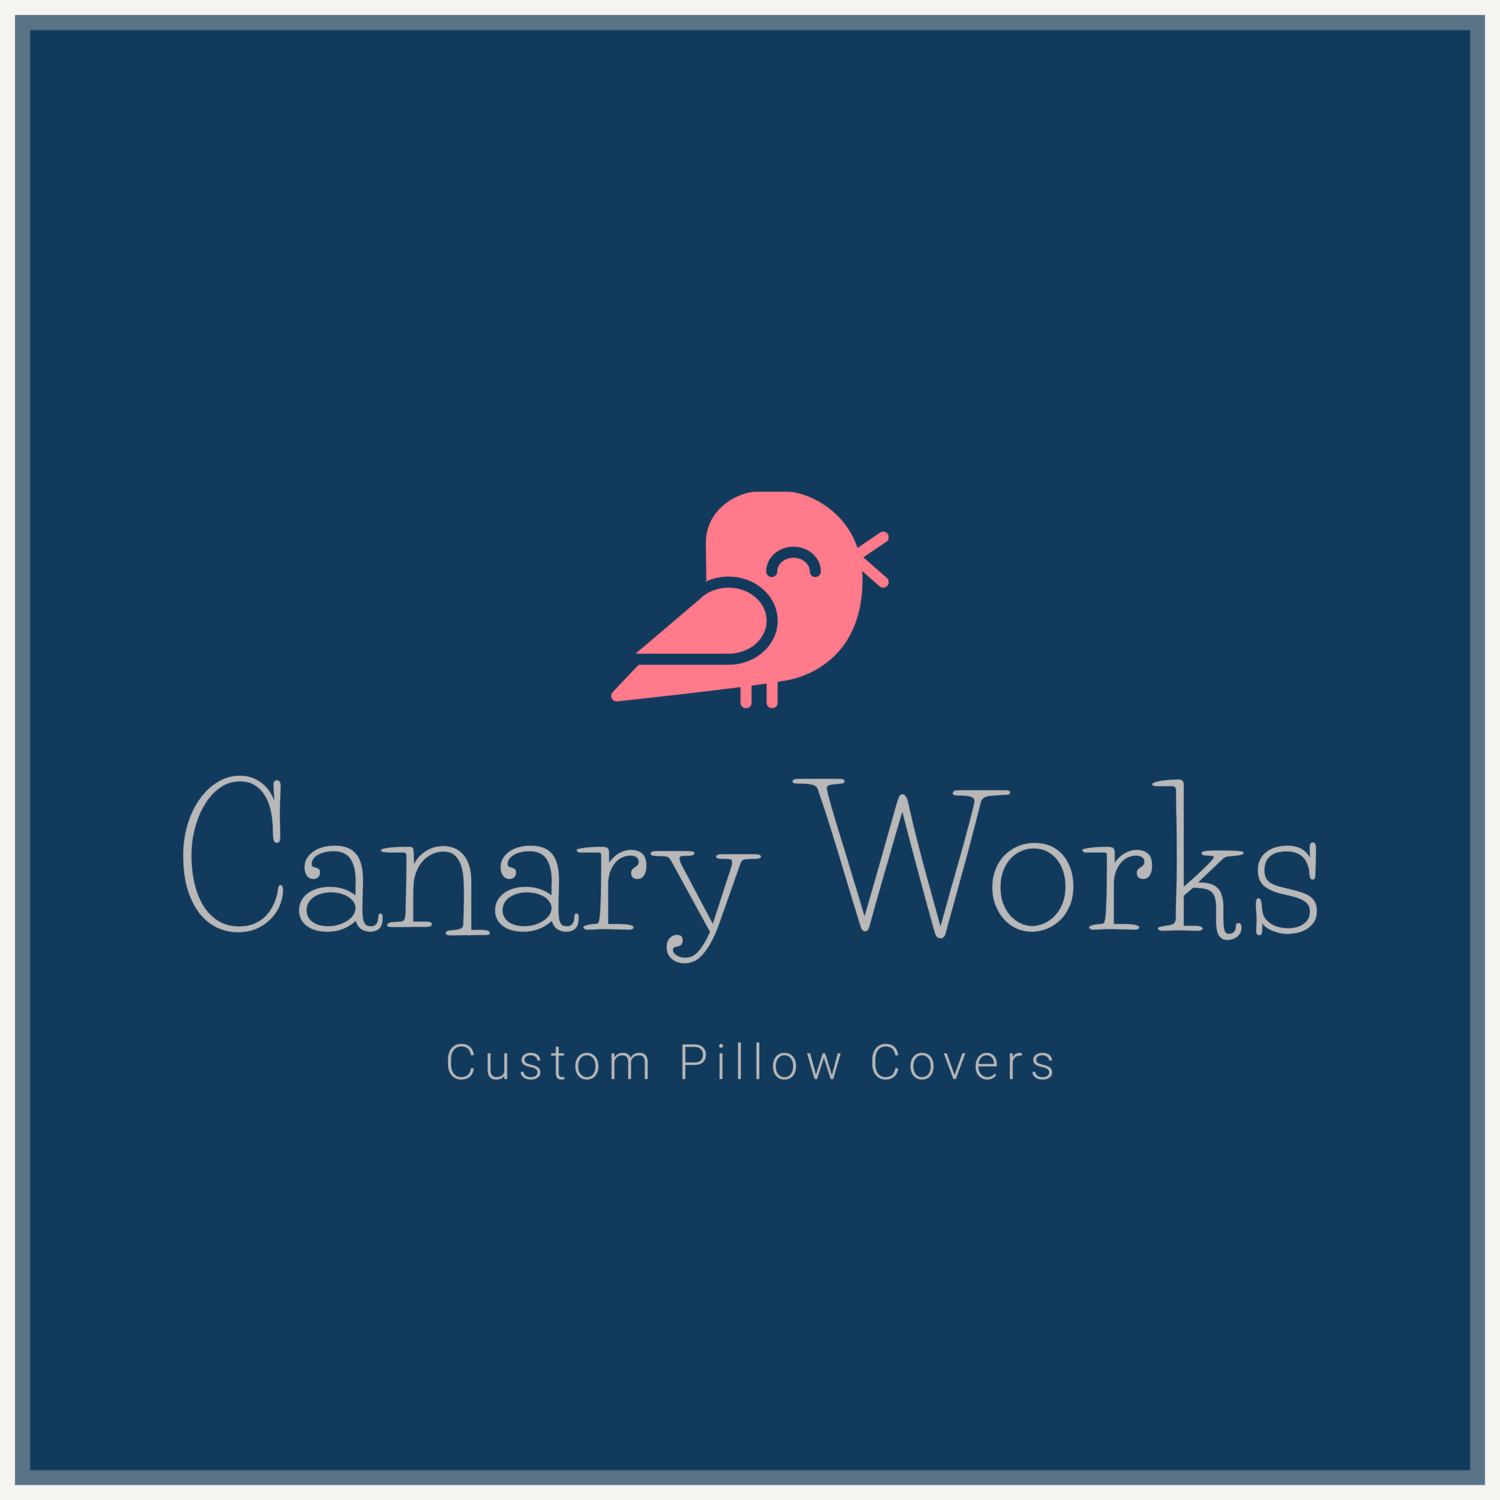 Canary Works